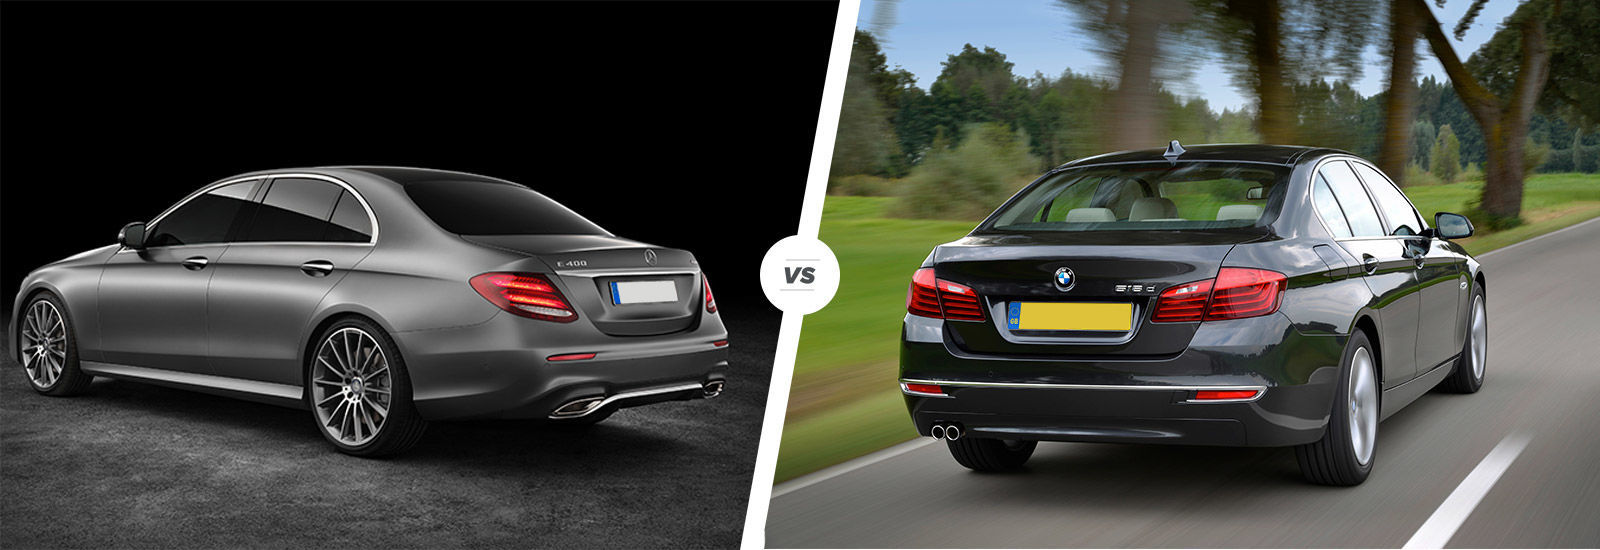 mercedes e-class vs bmw 5 series comparison | carwow